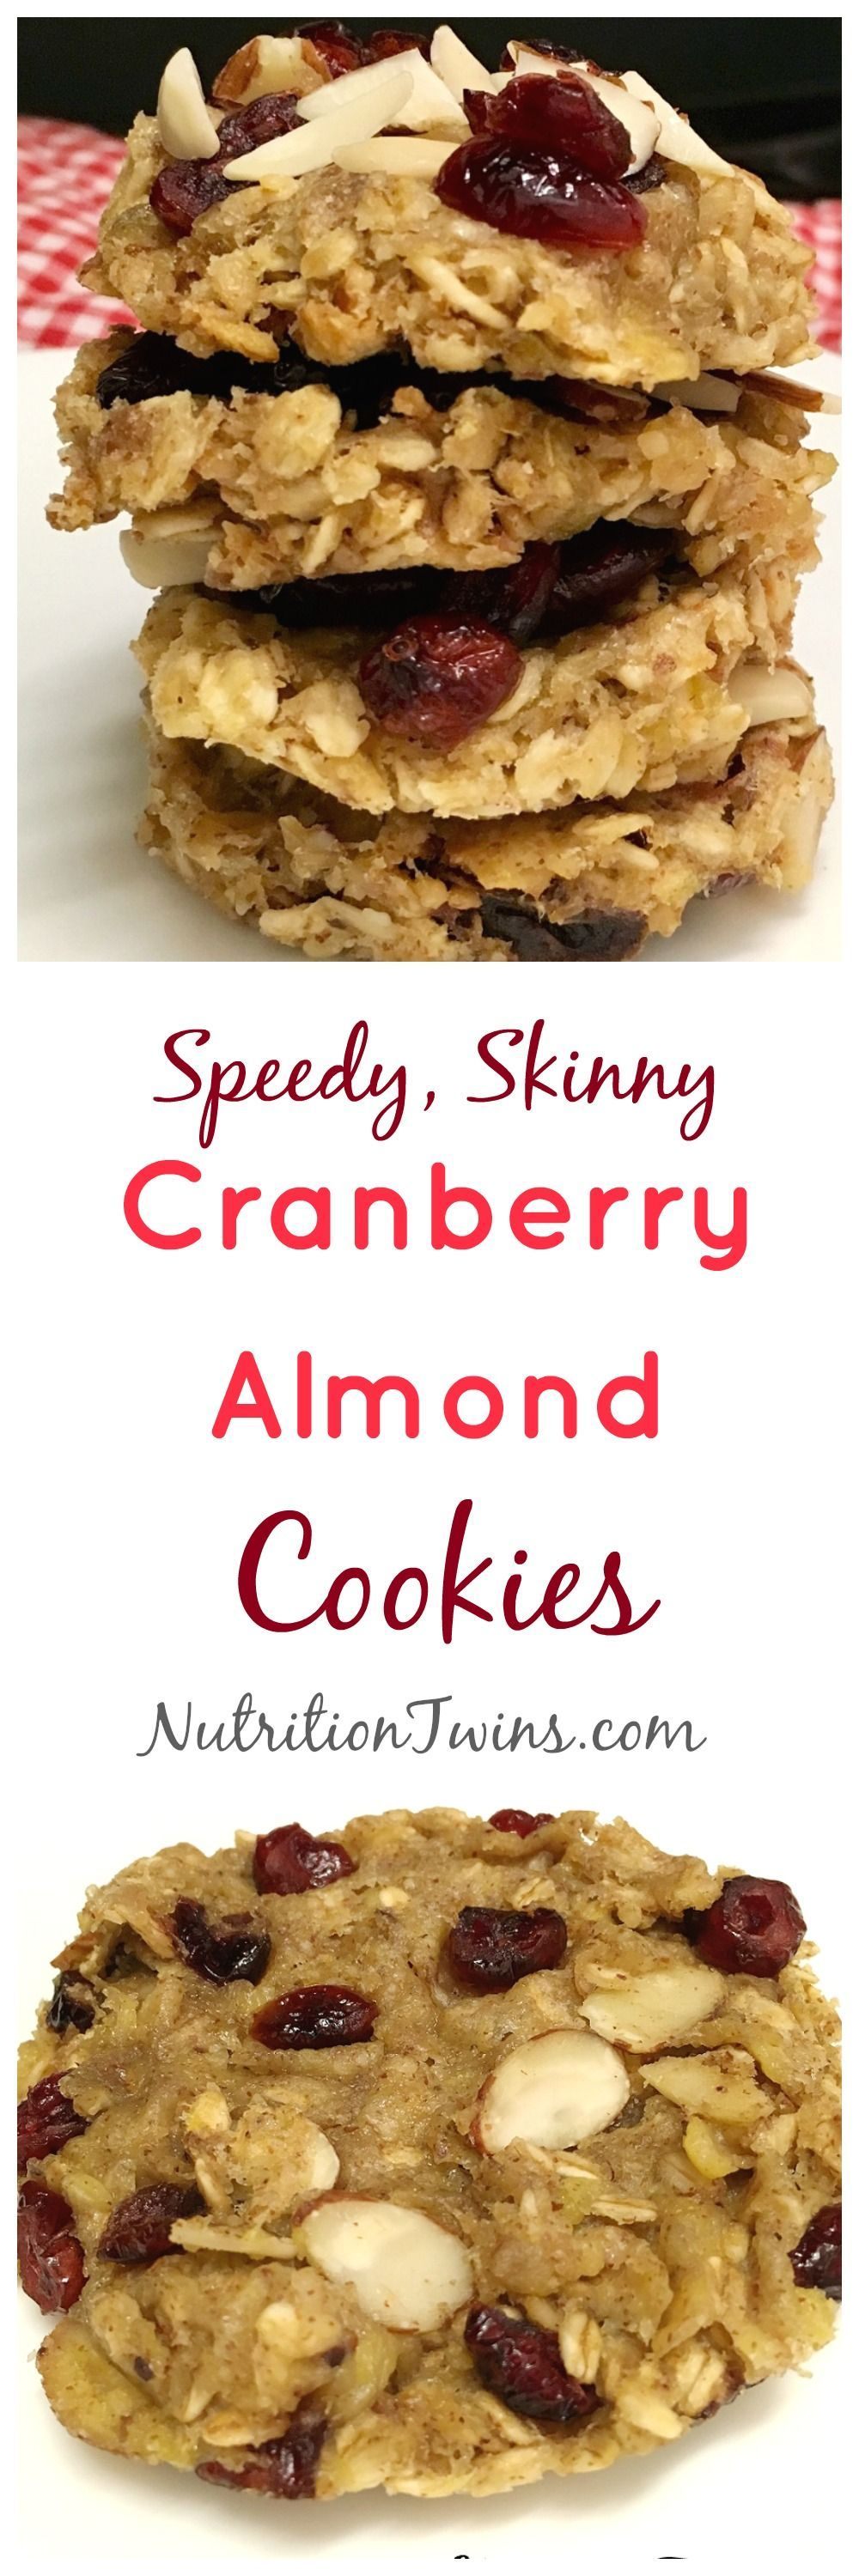 #wwwnutritiontwinscom #newsletter #nutrition #cranberry #calories #cravings #recipes #cookies #fitne...